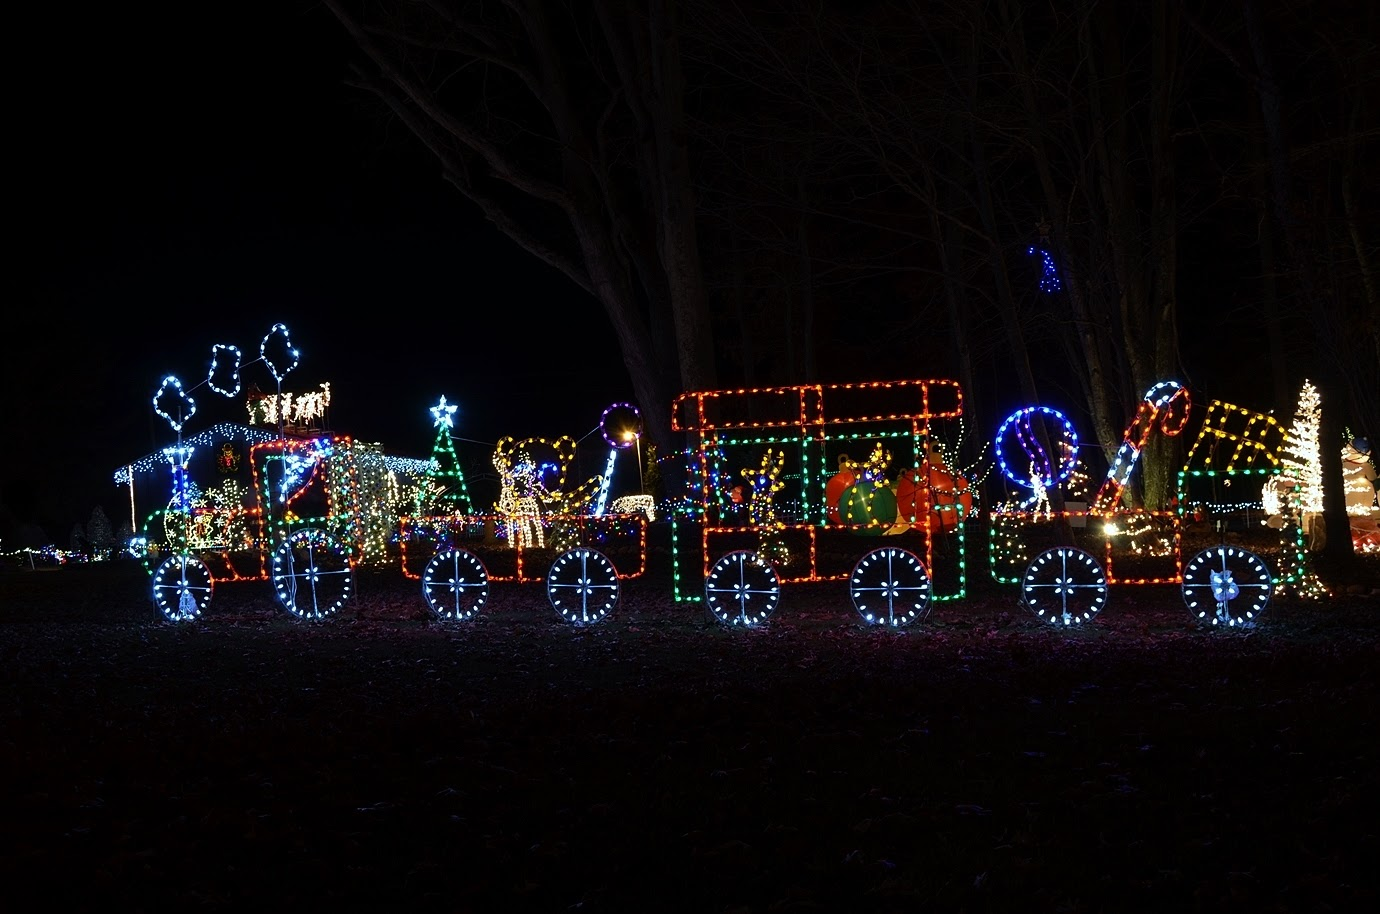 after dinner and drinks we drove a short ways up the road to the pilot mountain christmas lights